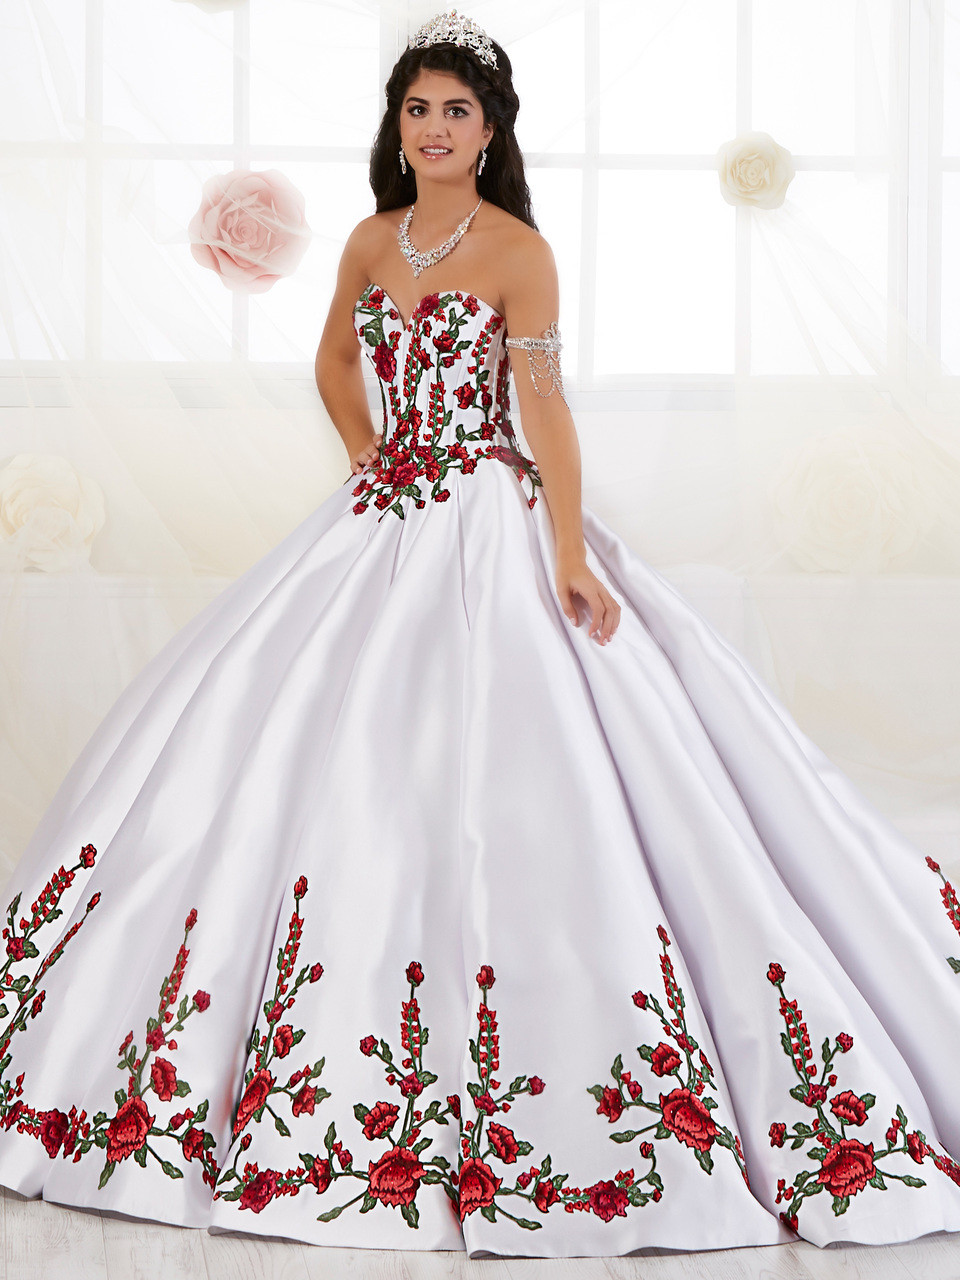 9e9036ee722 Sweetheart Floral Embroidered Quinceanera Collection Dress 26908.  Sweetheart Floral Embroidered Quinceanera Collection Ball Gown ...